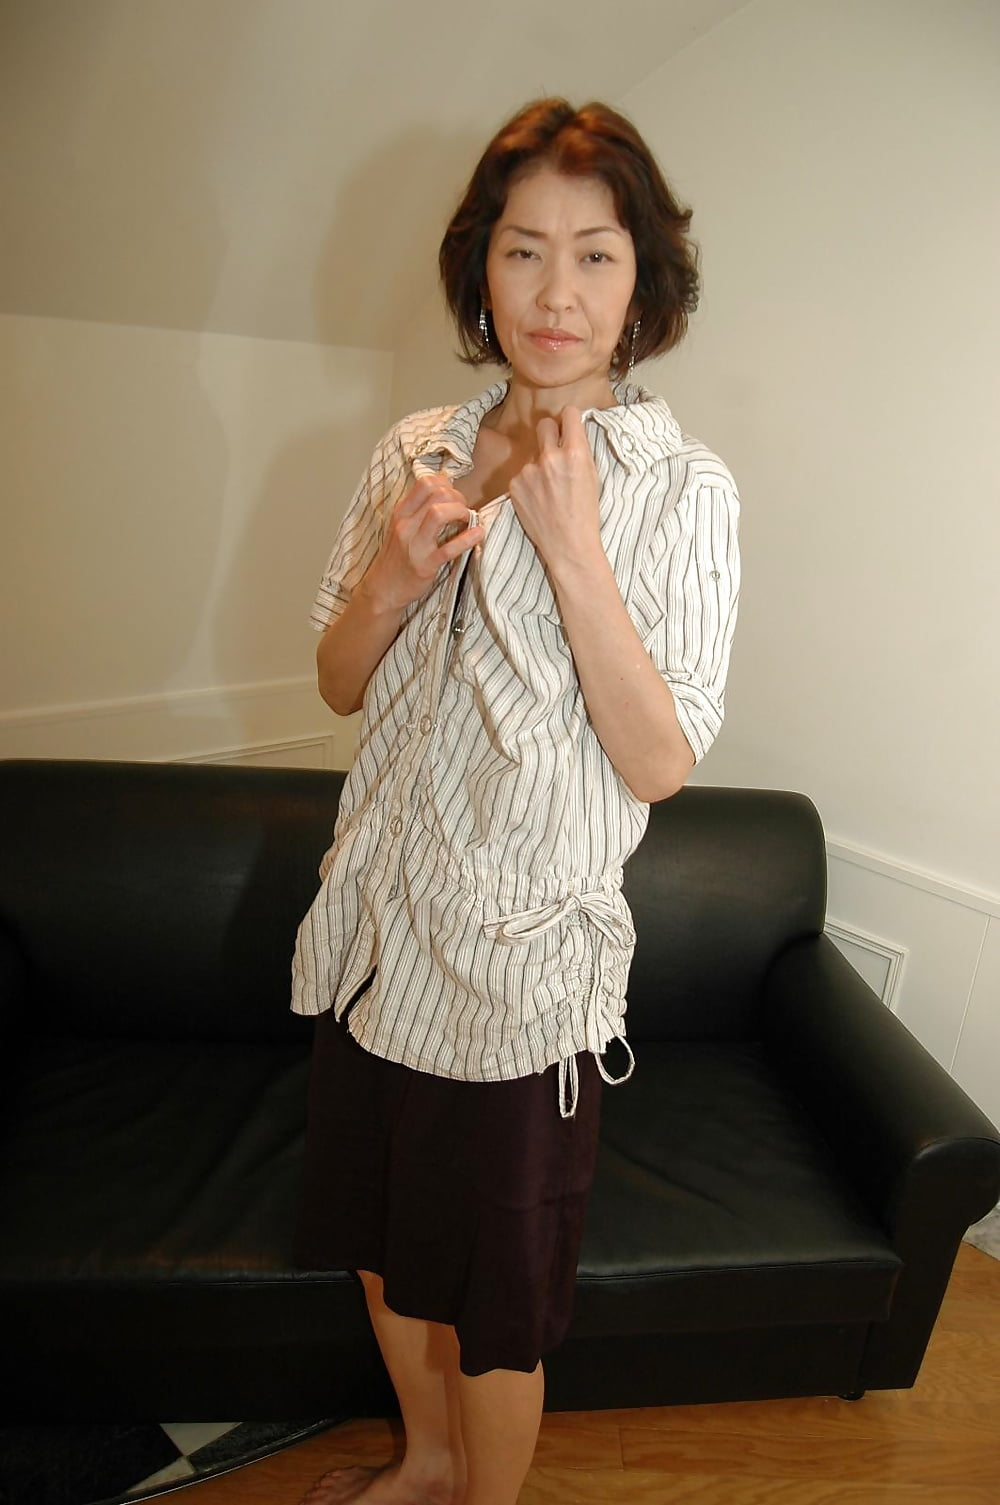 shaved-asian-granny-pic-girl-with-no-arms-legs-porn